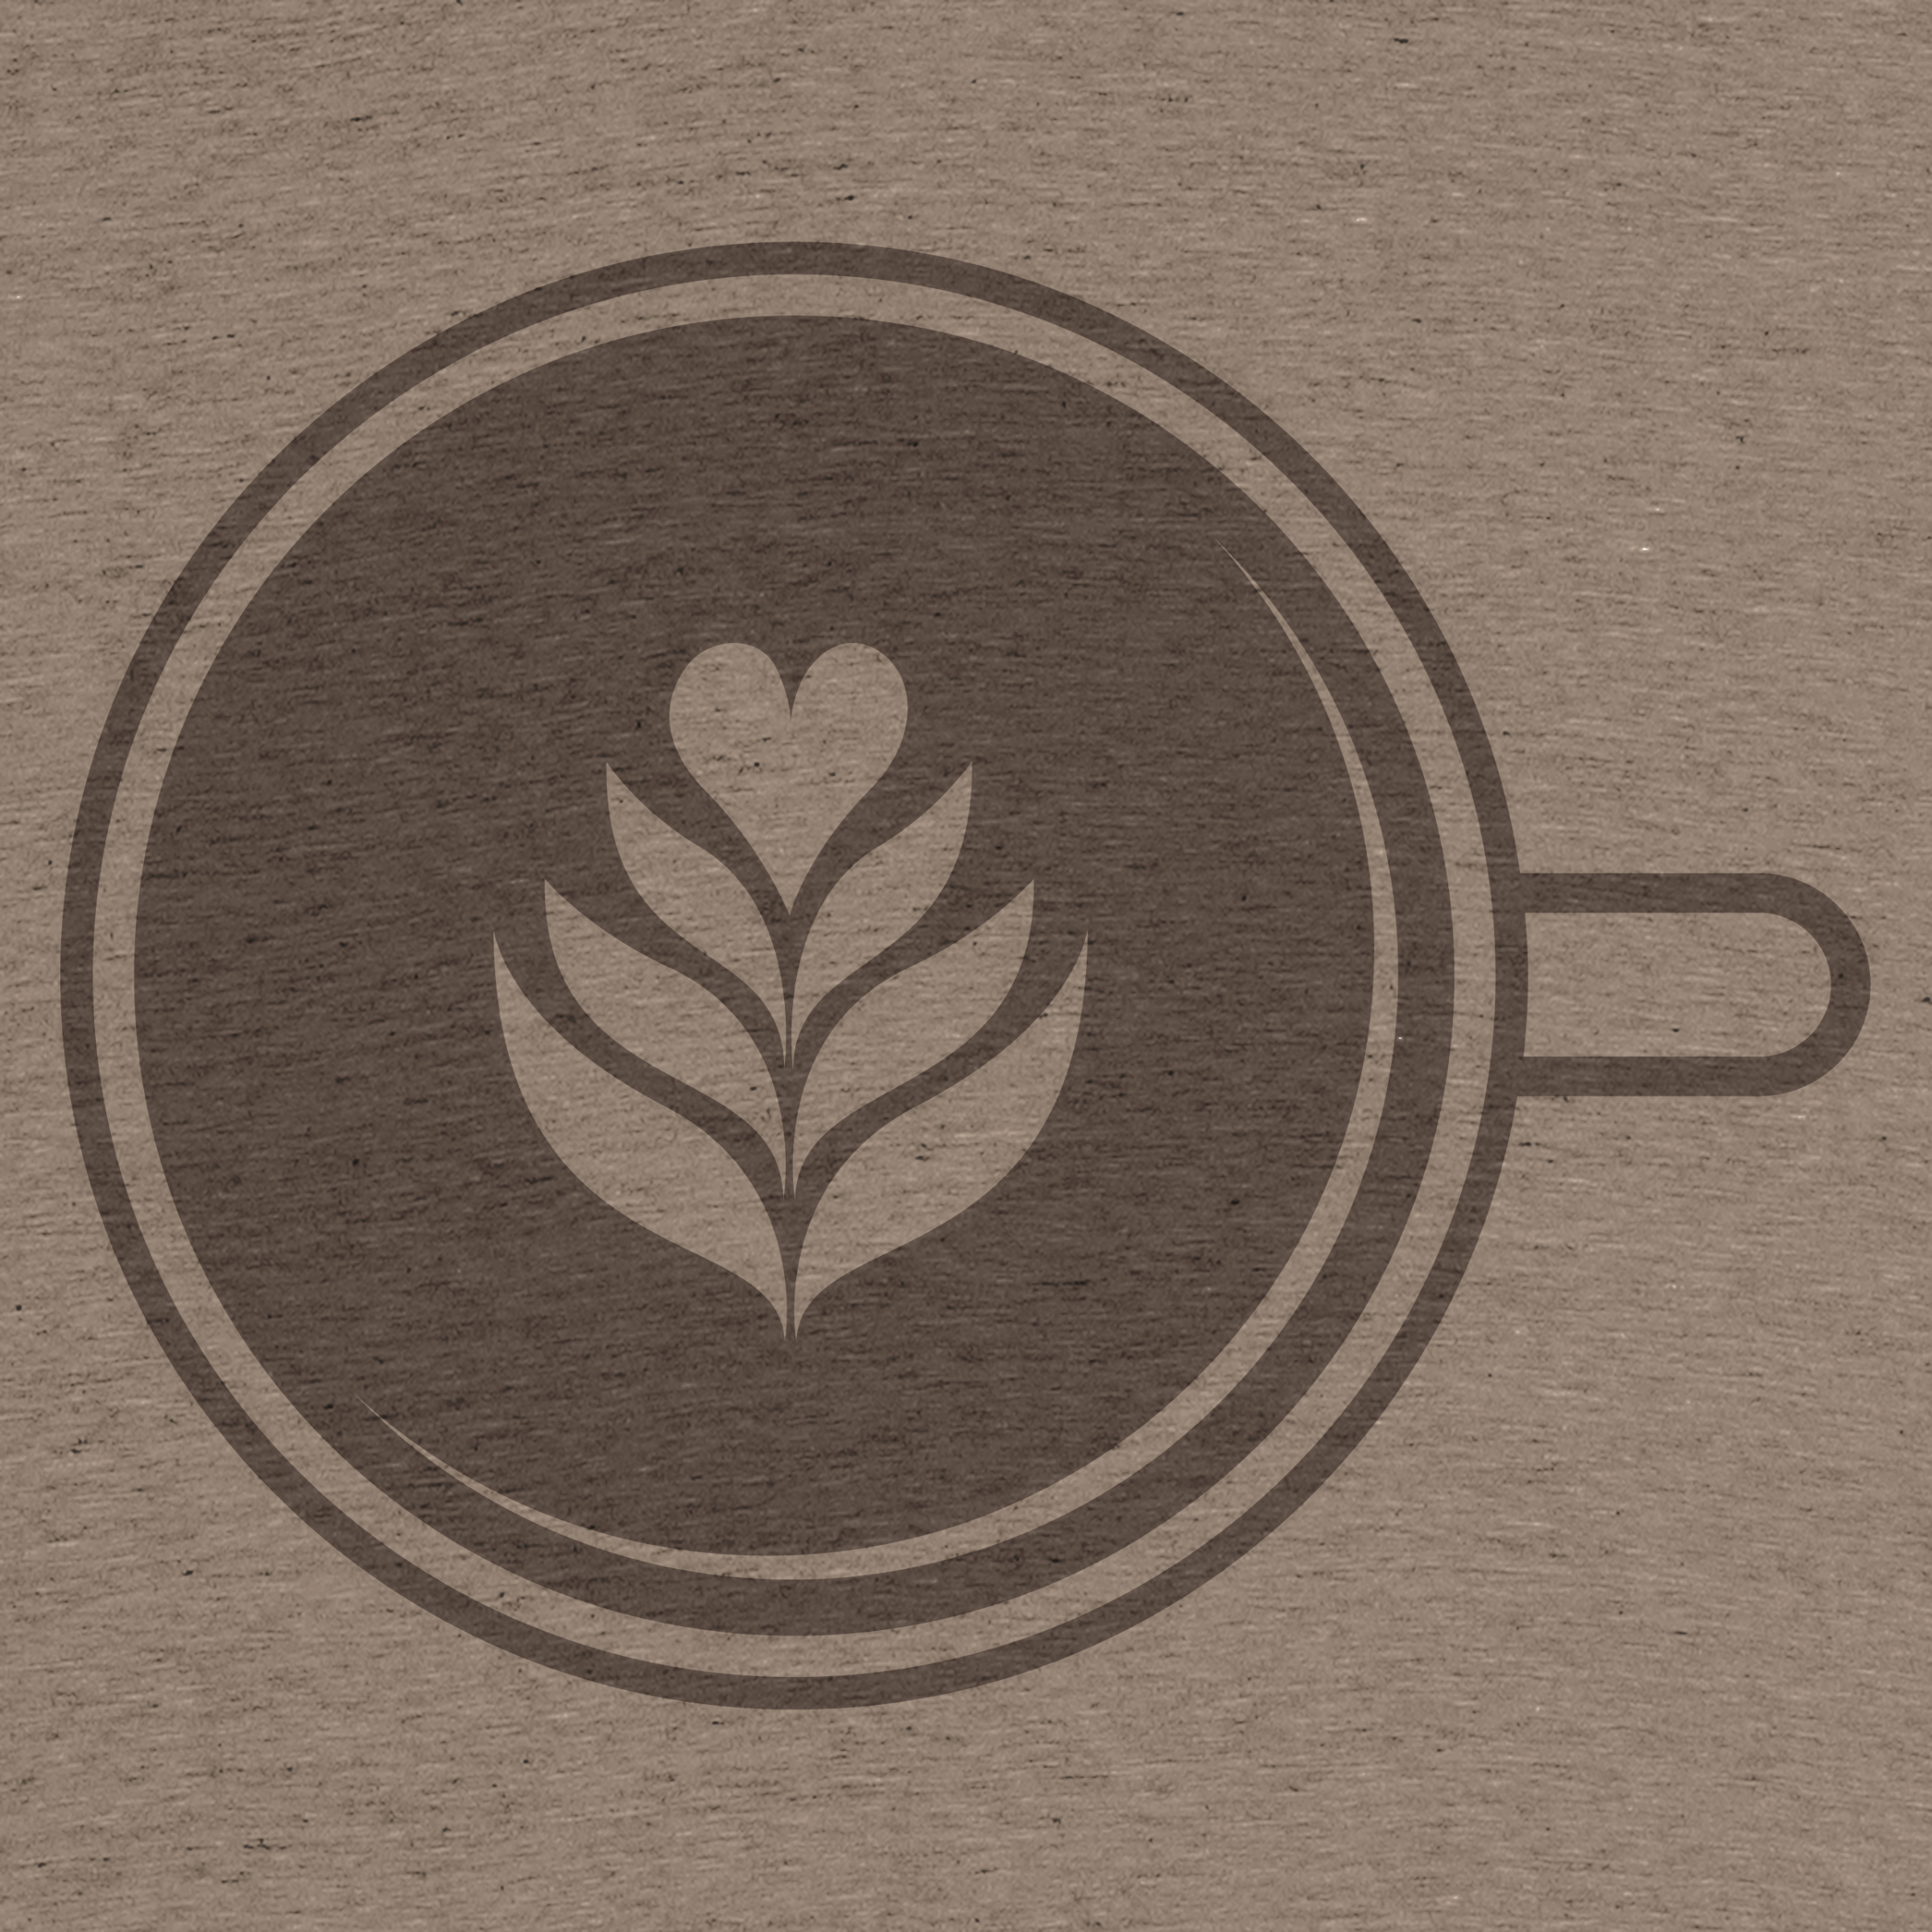 Coffee on Your Shirt